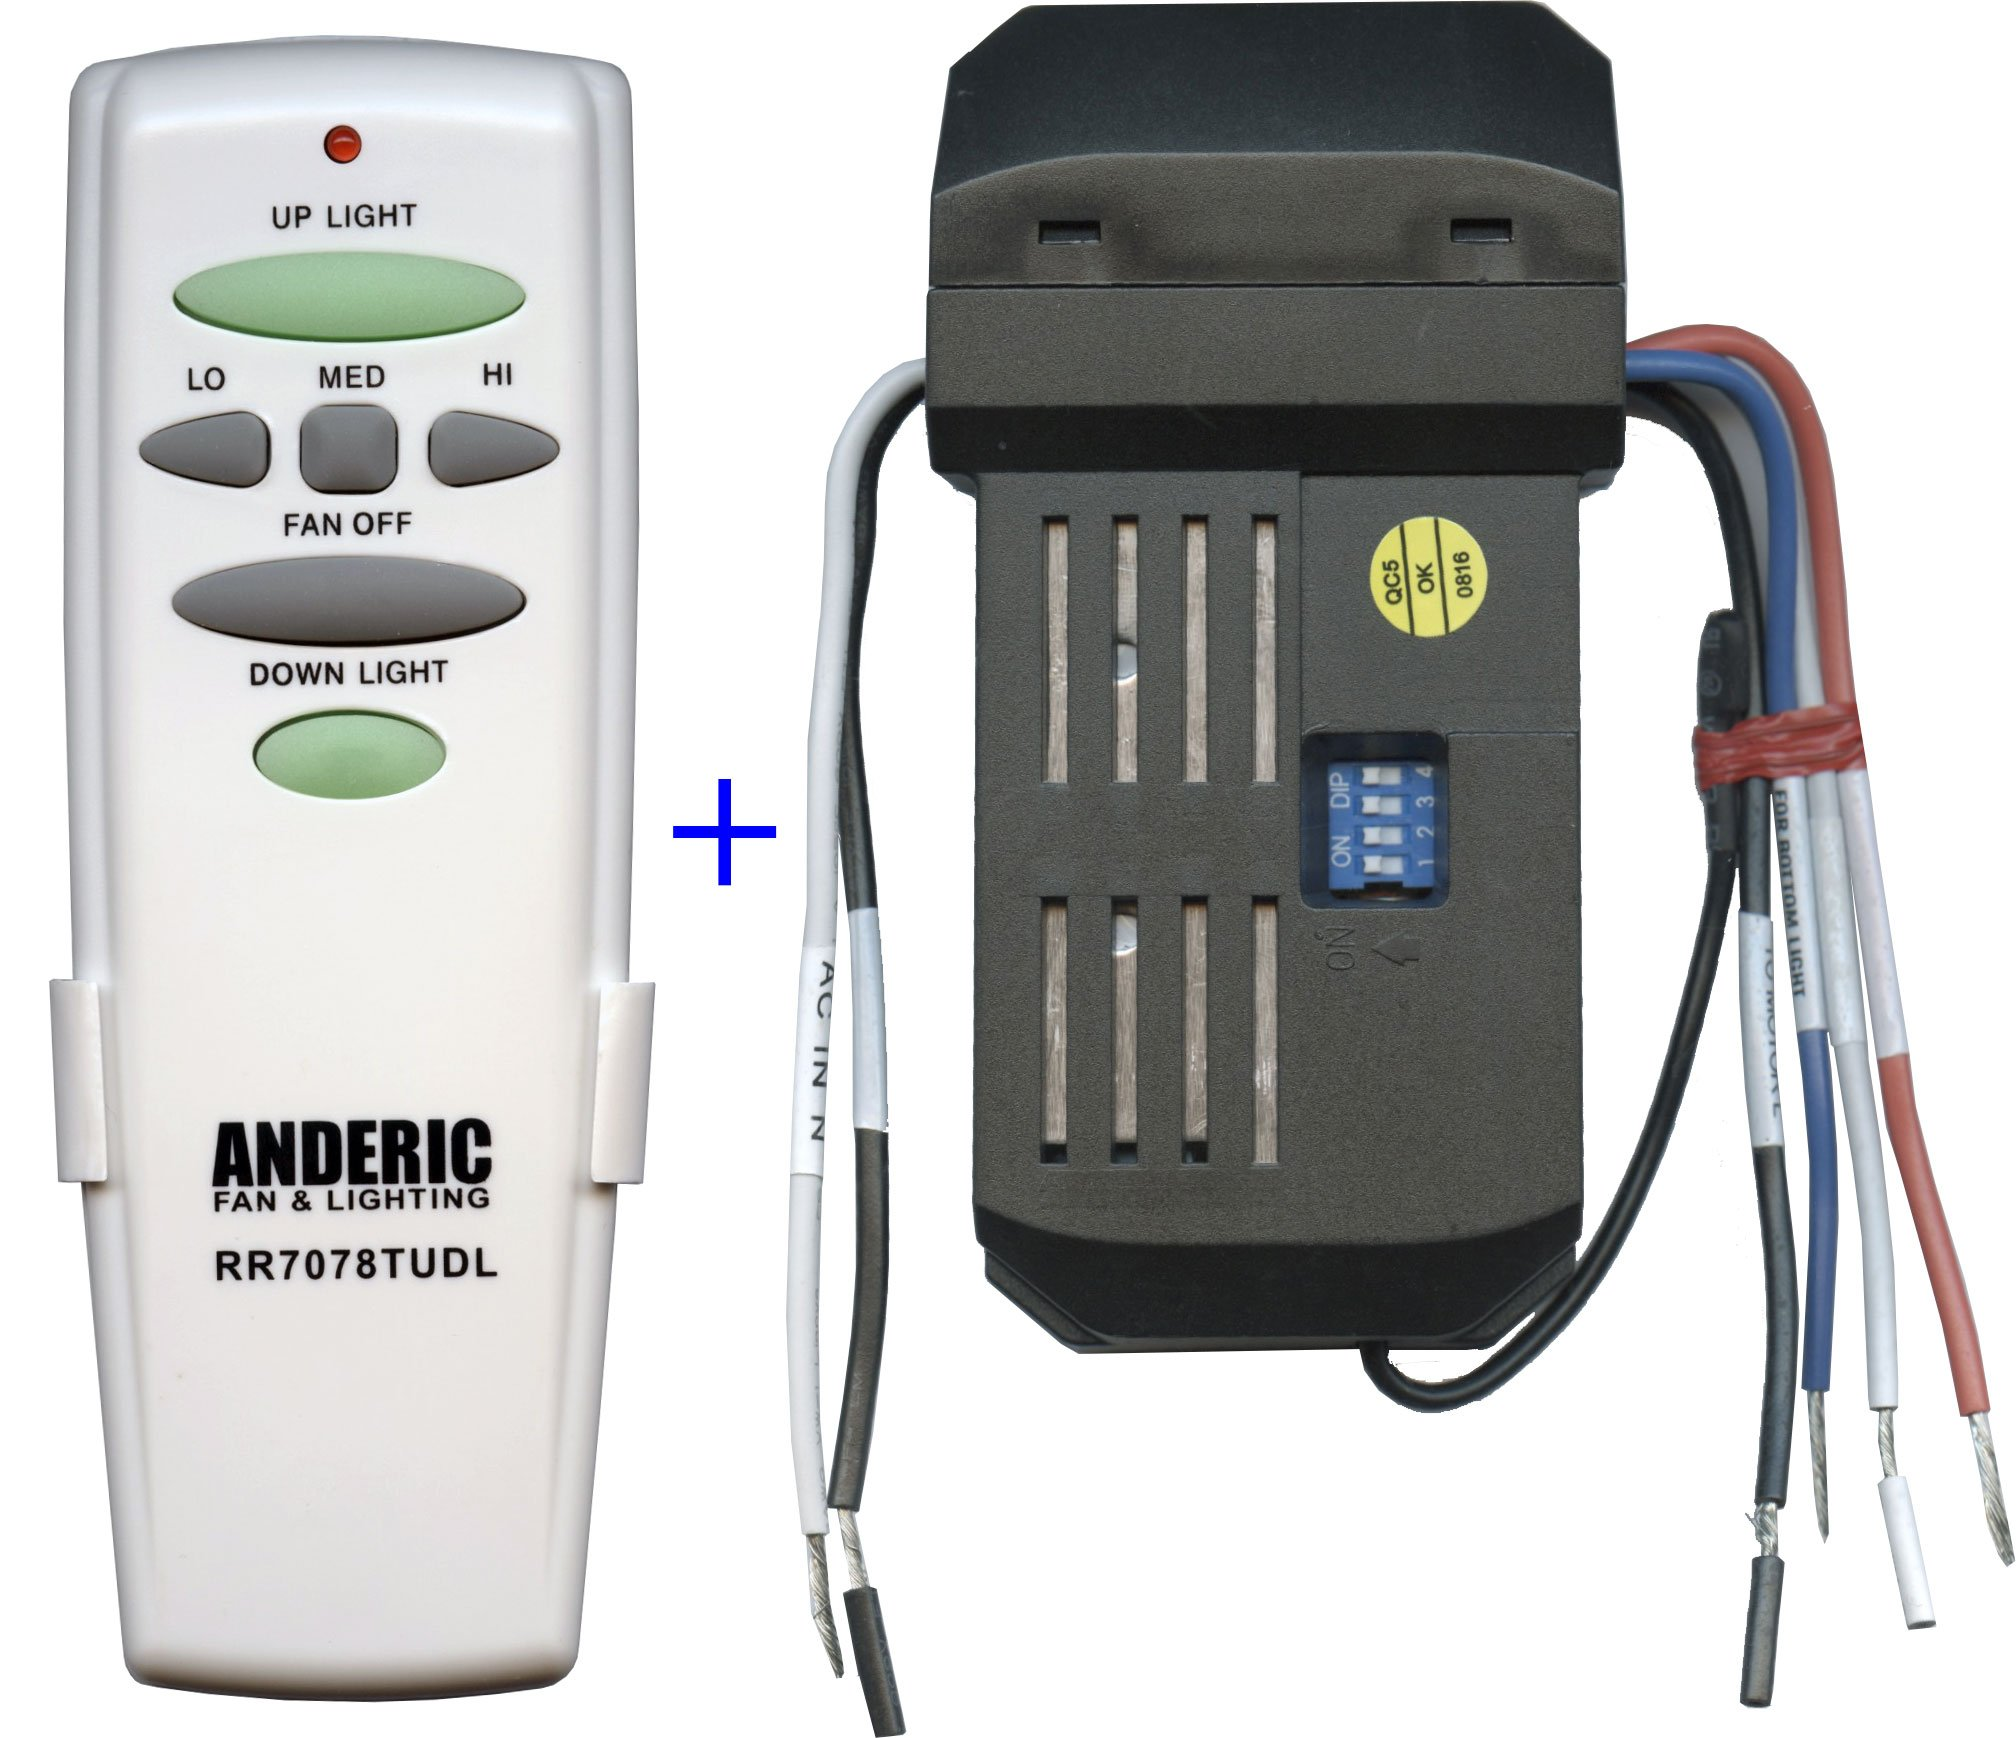 Anderic Replacement Universal Remote Control Conversion Kit with Dimming for Fan with Up and Down Lights - Includes Anderic RR7078TUDL and UC7067GMRX Receiver